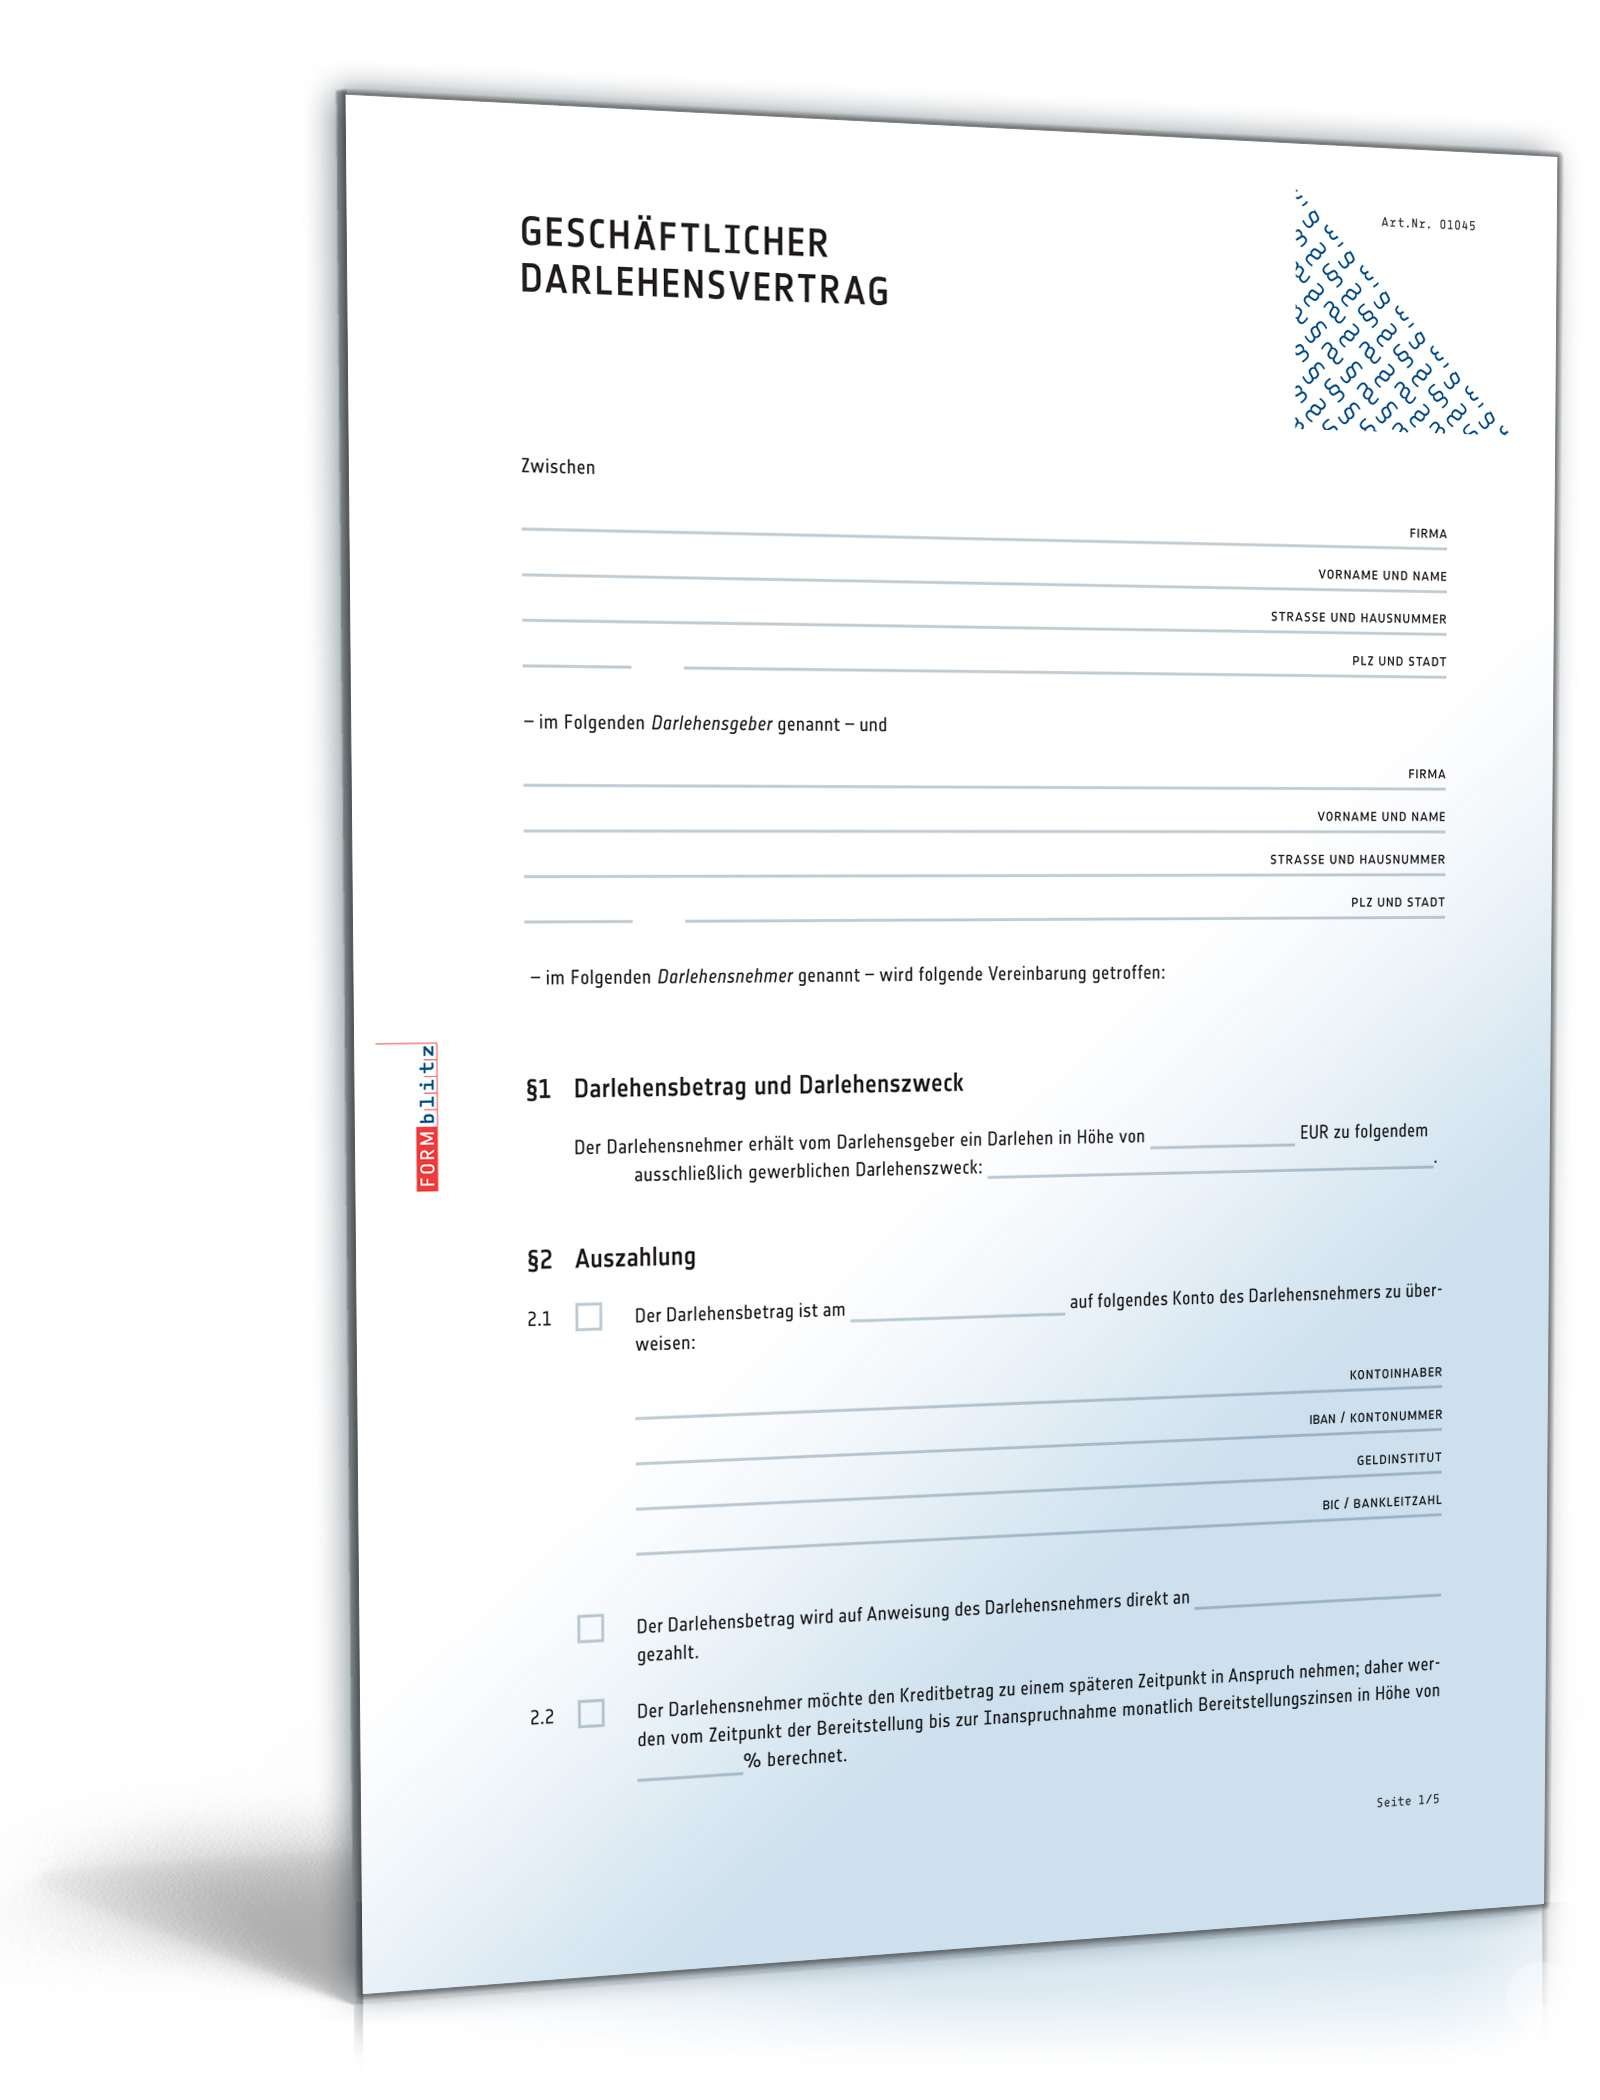 Privater Darlehensvertrag Muster Vorlage Word Pdf